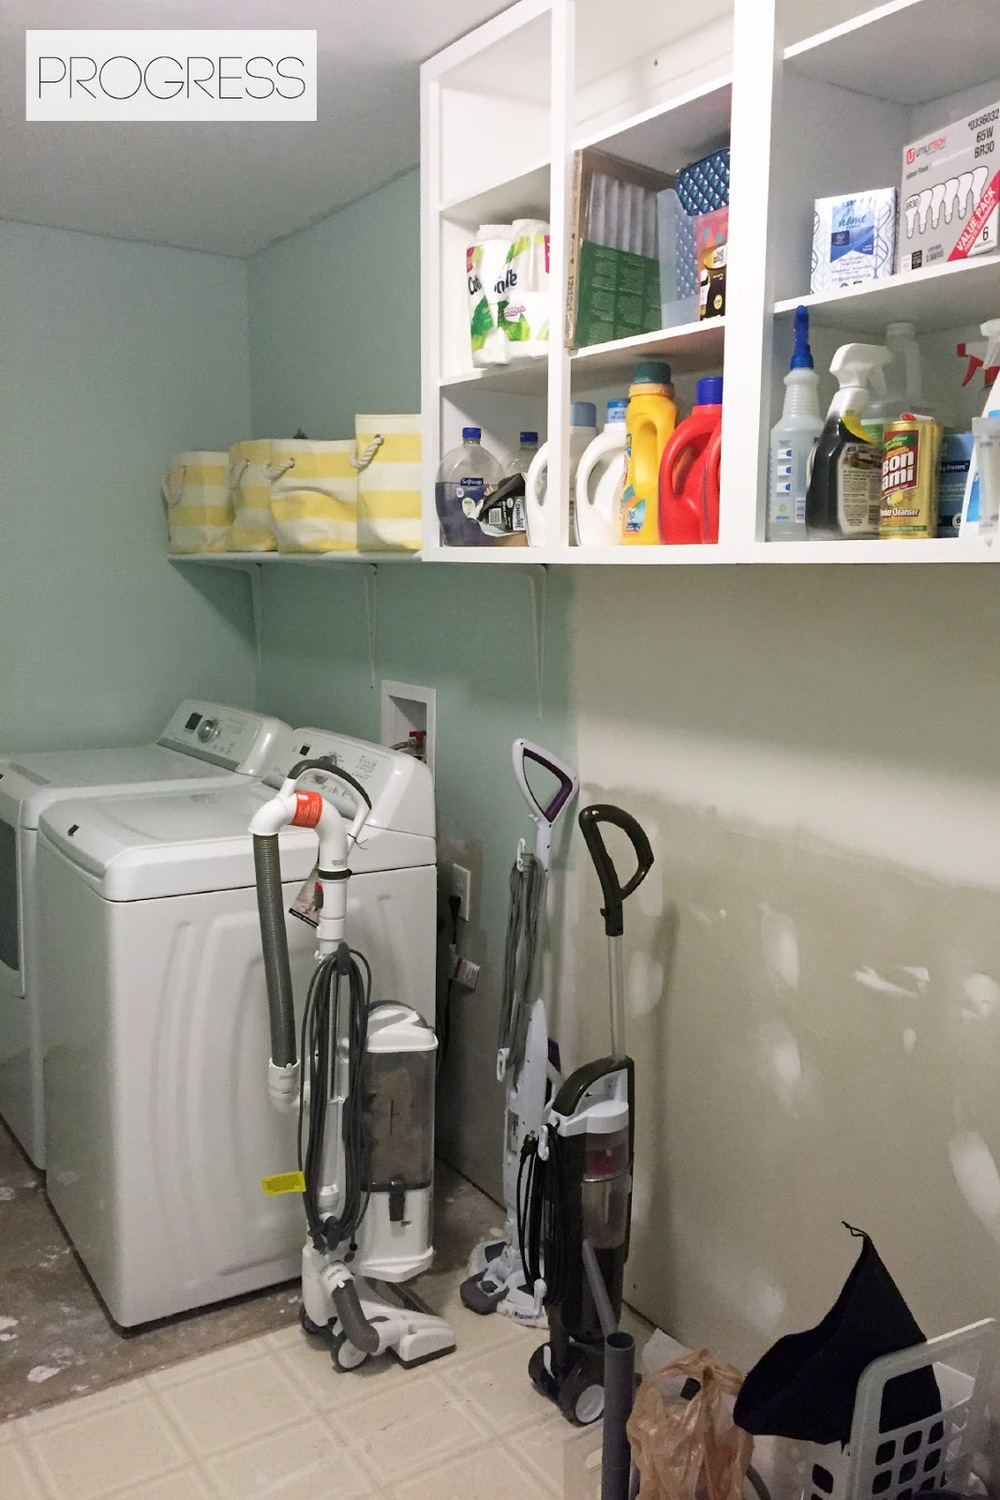 laundry_room_progress(1).jpg